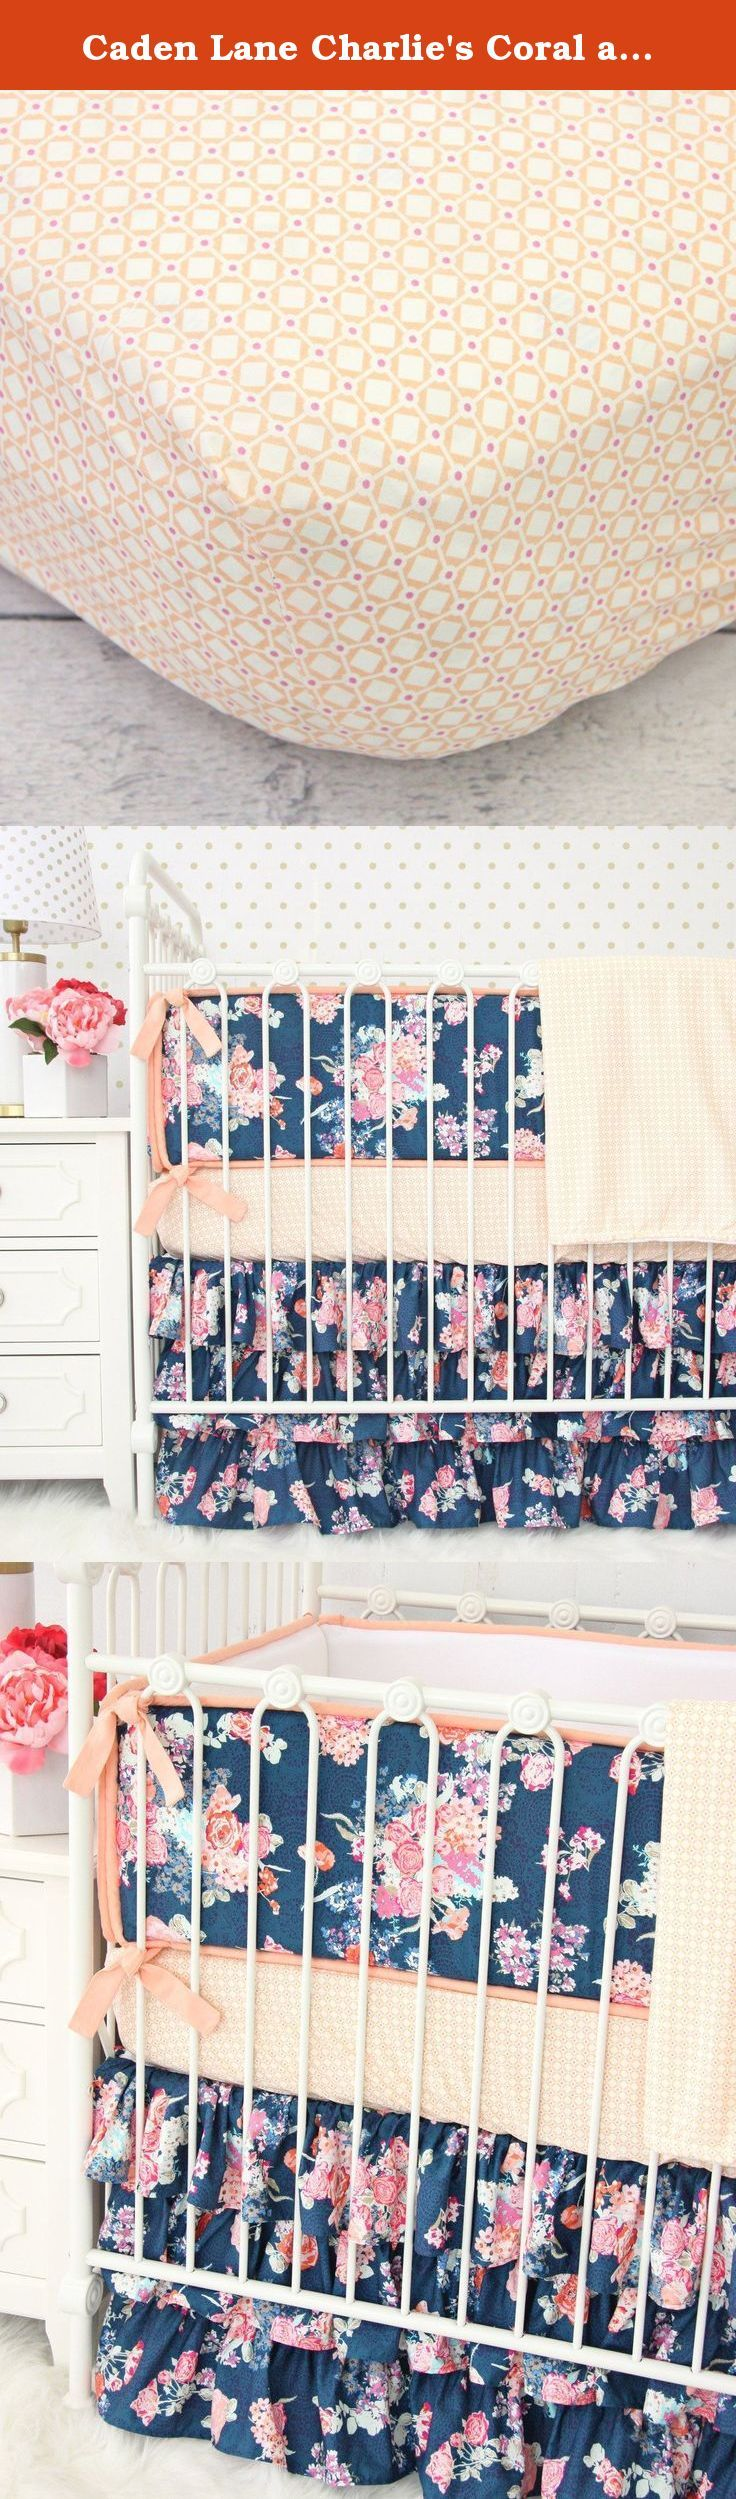 """Caden Lane Charlie's Coral and Floral 2 Piece Crib Bedding Set. The Caden Lane Charlie's Coral and Navy 2 Piece Crib Bedding Set is one of Caden Lanes most unique bedding set pieces. The stark navy blue and floral design of the crib skirt are a beautiful combination with the more simply patterned peachy-colored bed spread. Features: 2pc set includes sheet and skirt Fitted crib sheet fits standard crib mattresses 28""""x52"""" Crib skirt measures 17"""" in length 100% cotton If you are interested…"""